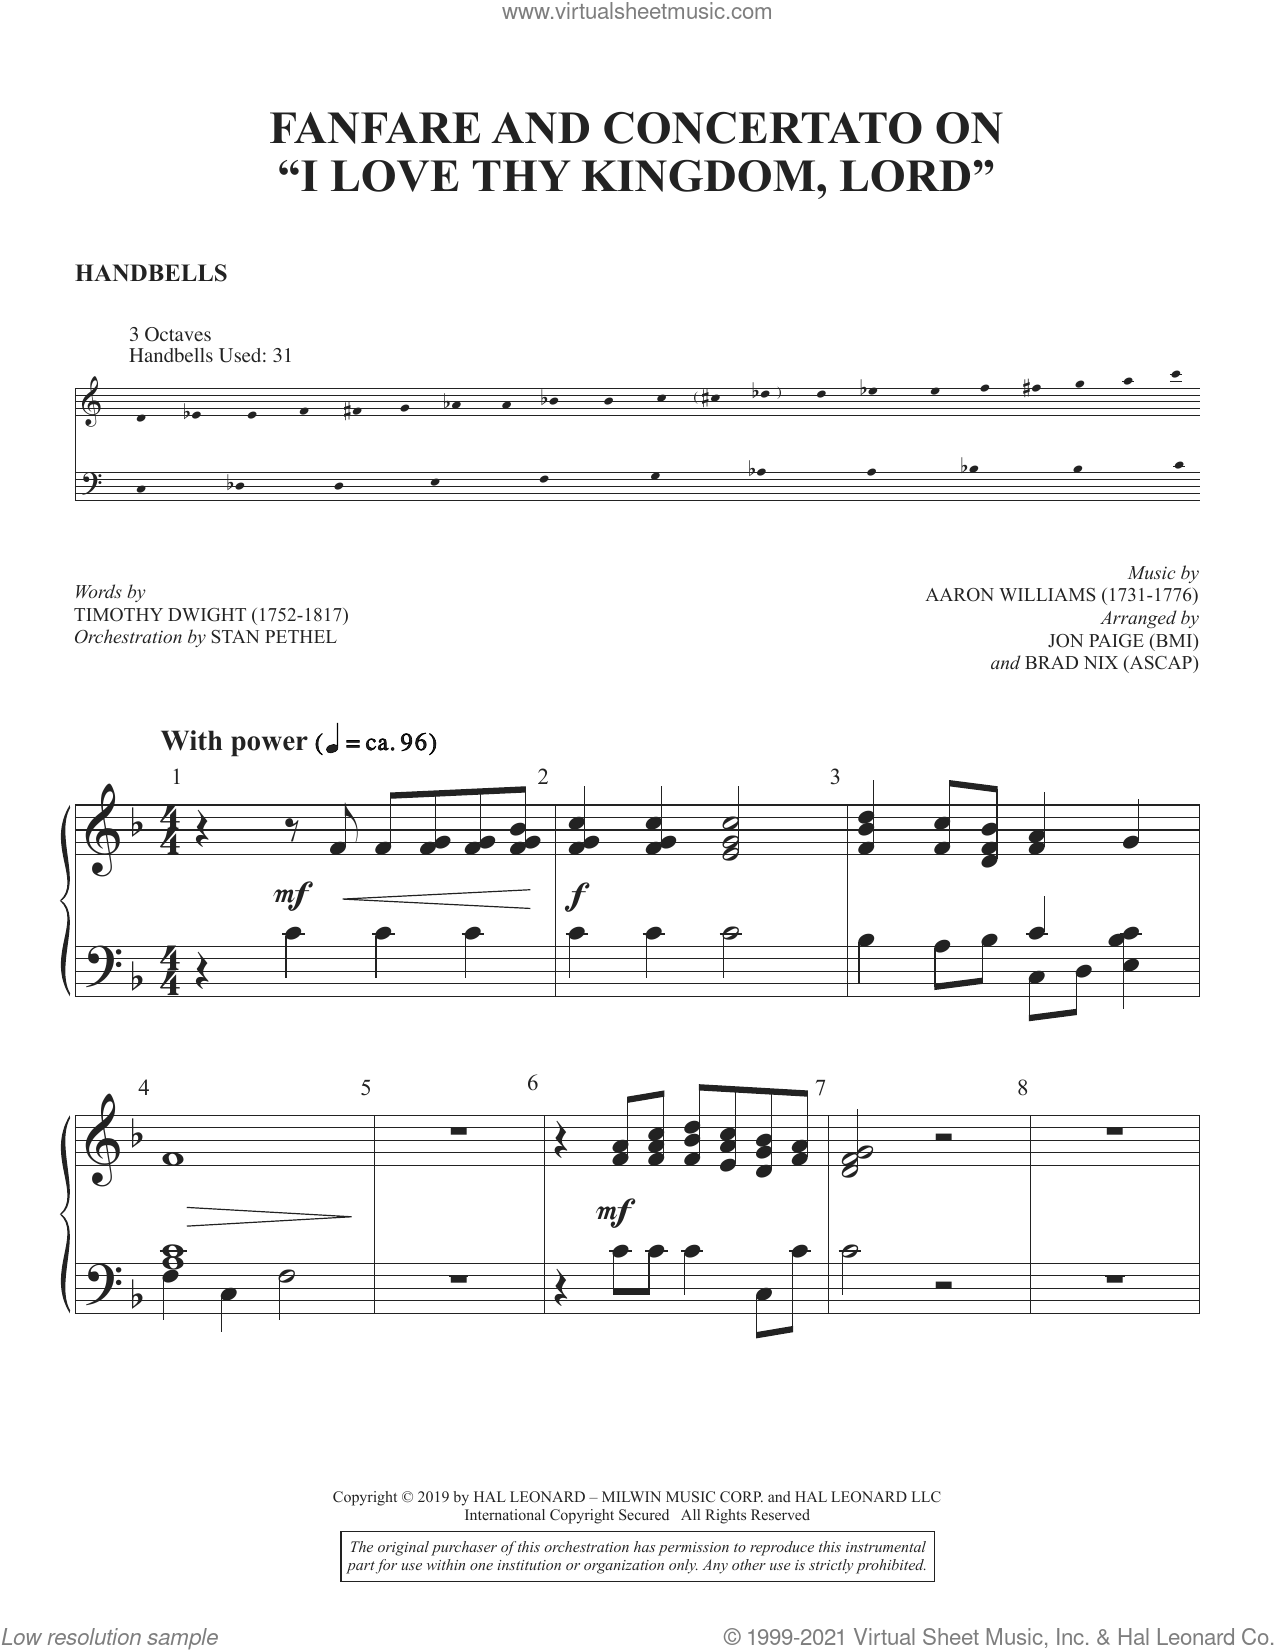 Fanfare and Concertato on 'I Love Thy Kingdom, Lord' (arr. Jon Paige and Brad Nix) sheet music for orchestra/band (handbells) by Timothy Dwight, Brad Nix and Jon Paige, intermediate skill level